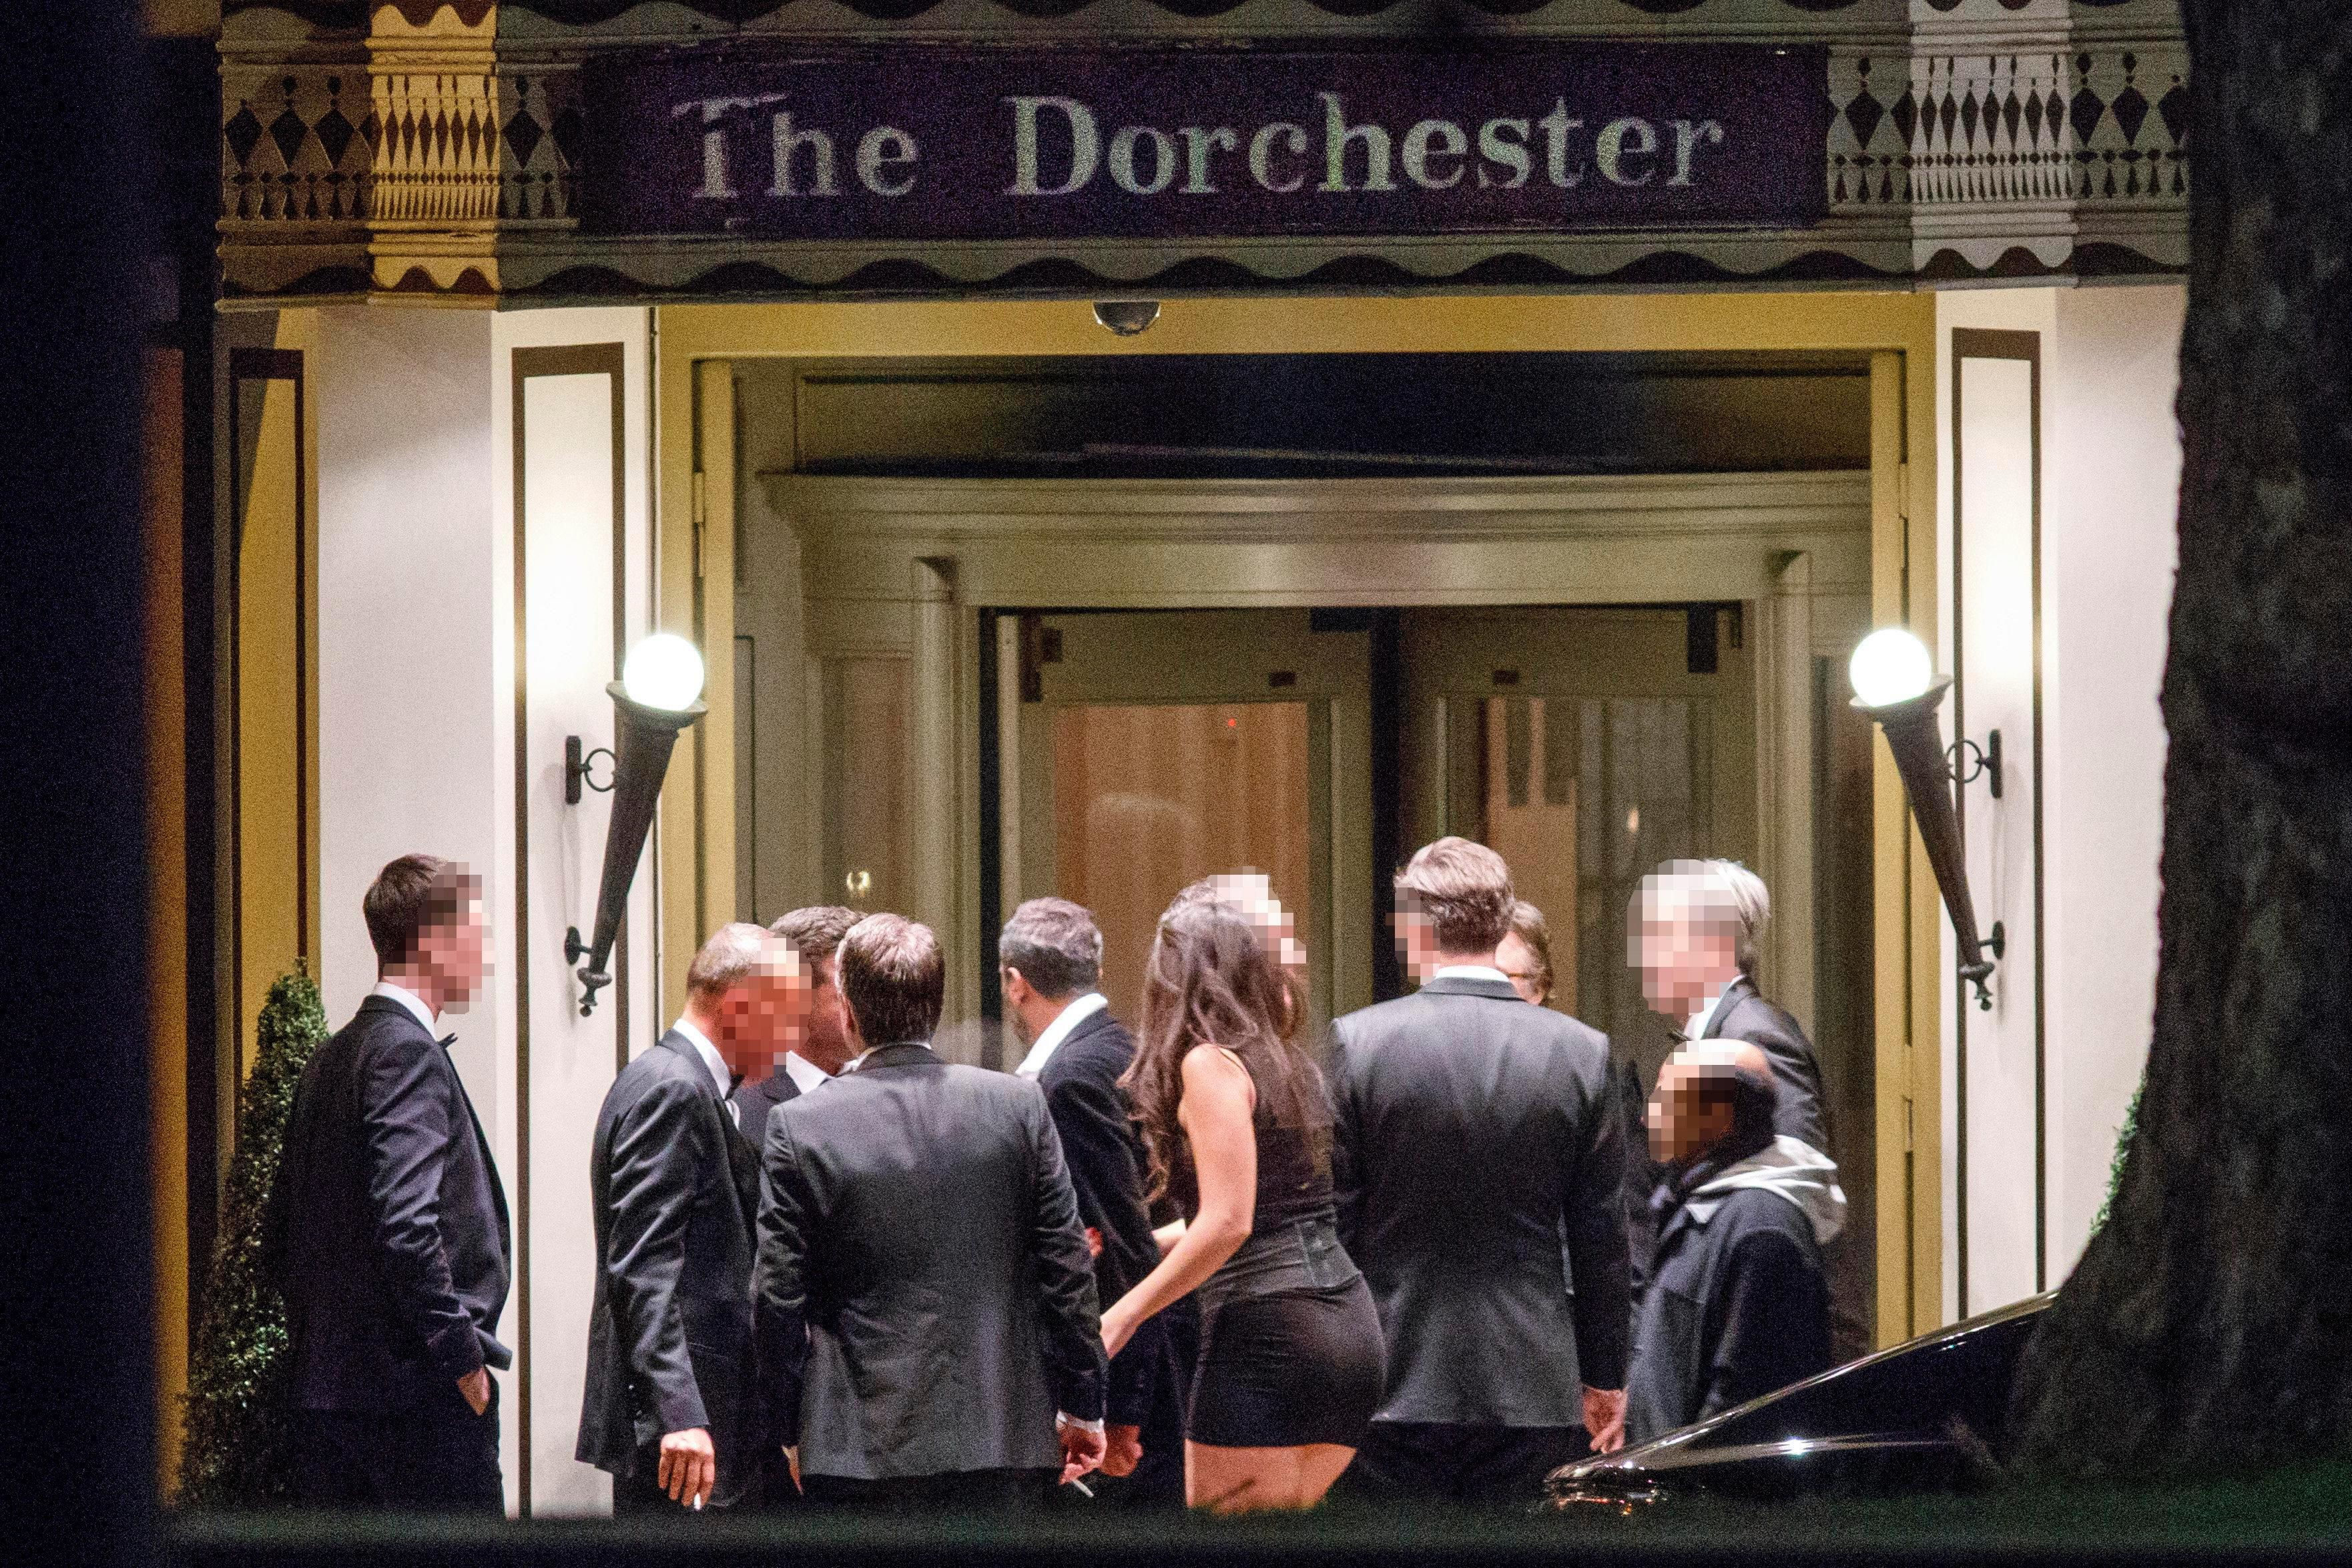 Rich men who harassed women at sleazy Presidents Club dinner could face criminal charges, Government's top lawyer warns